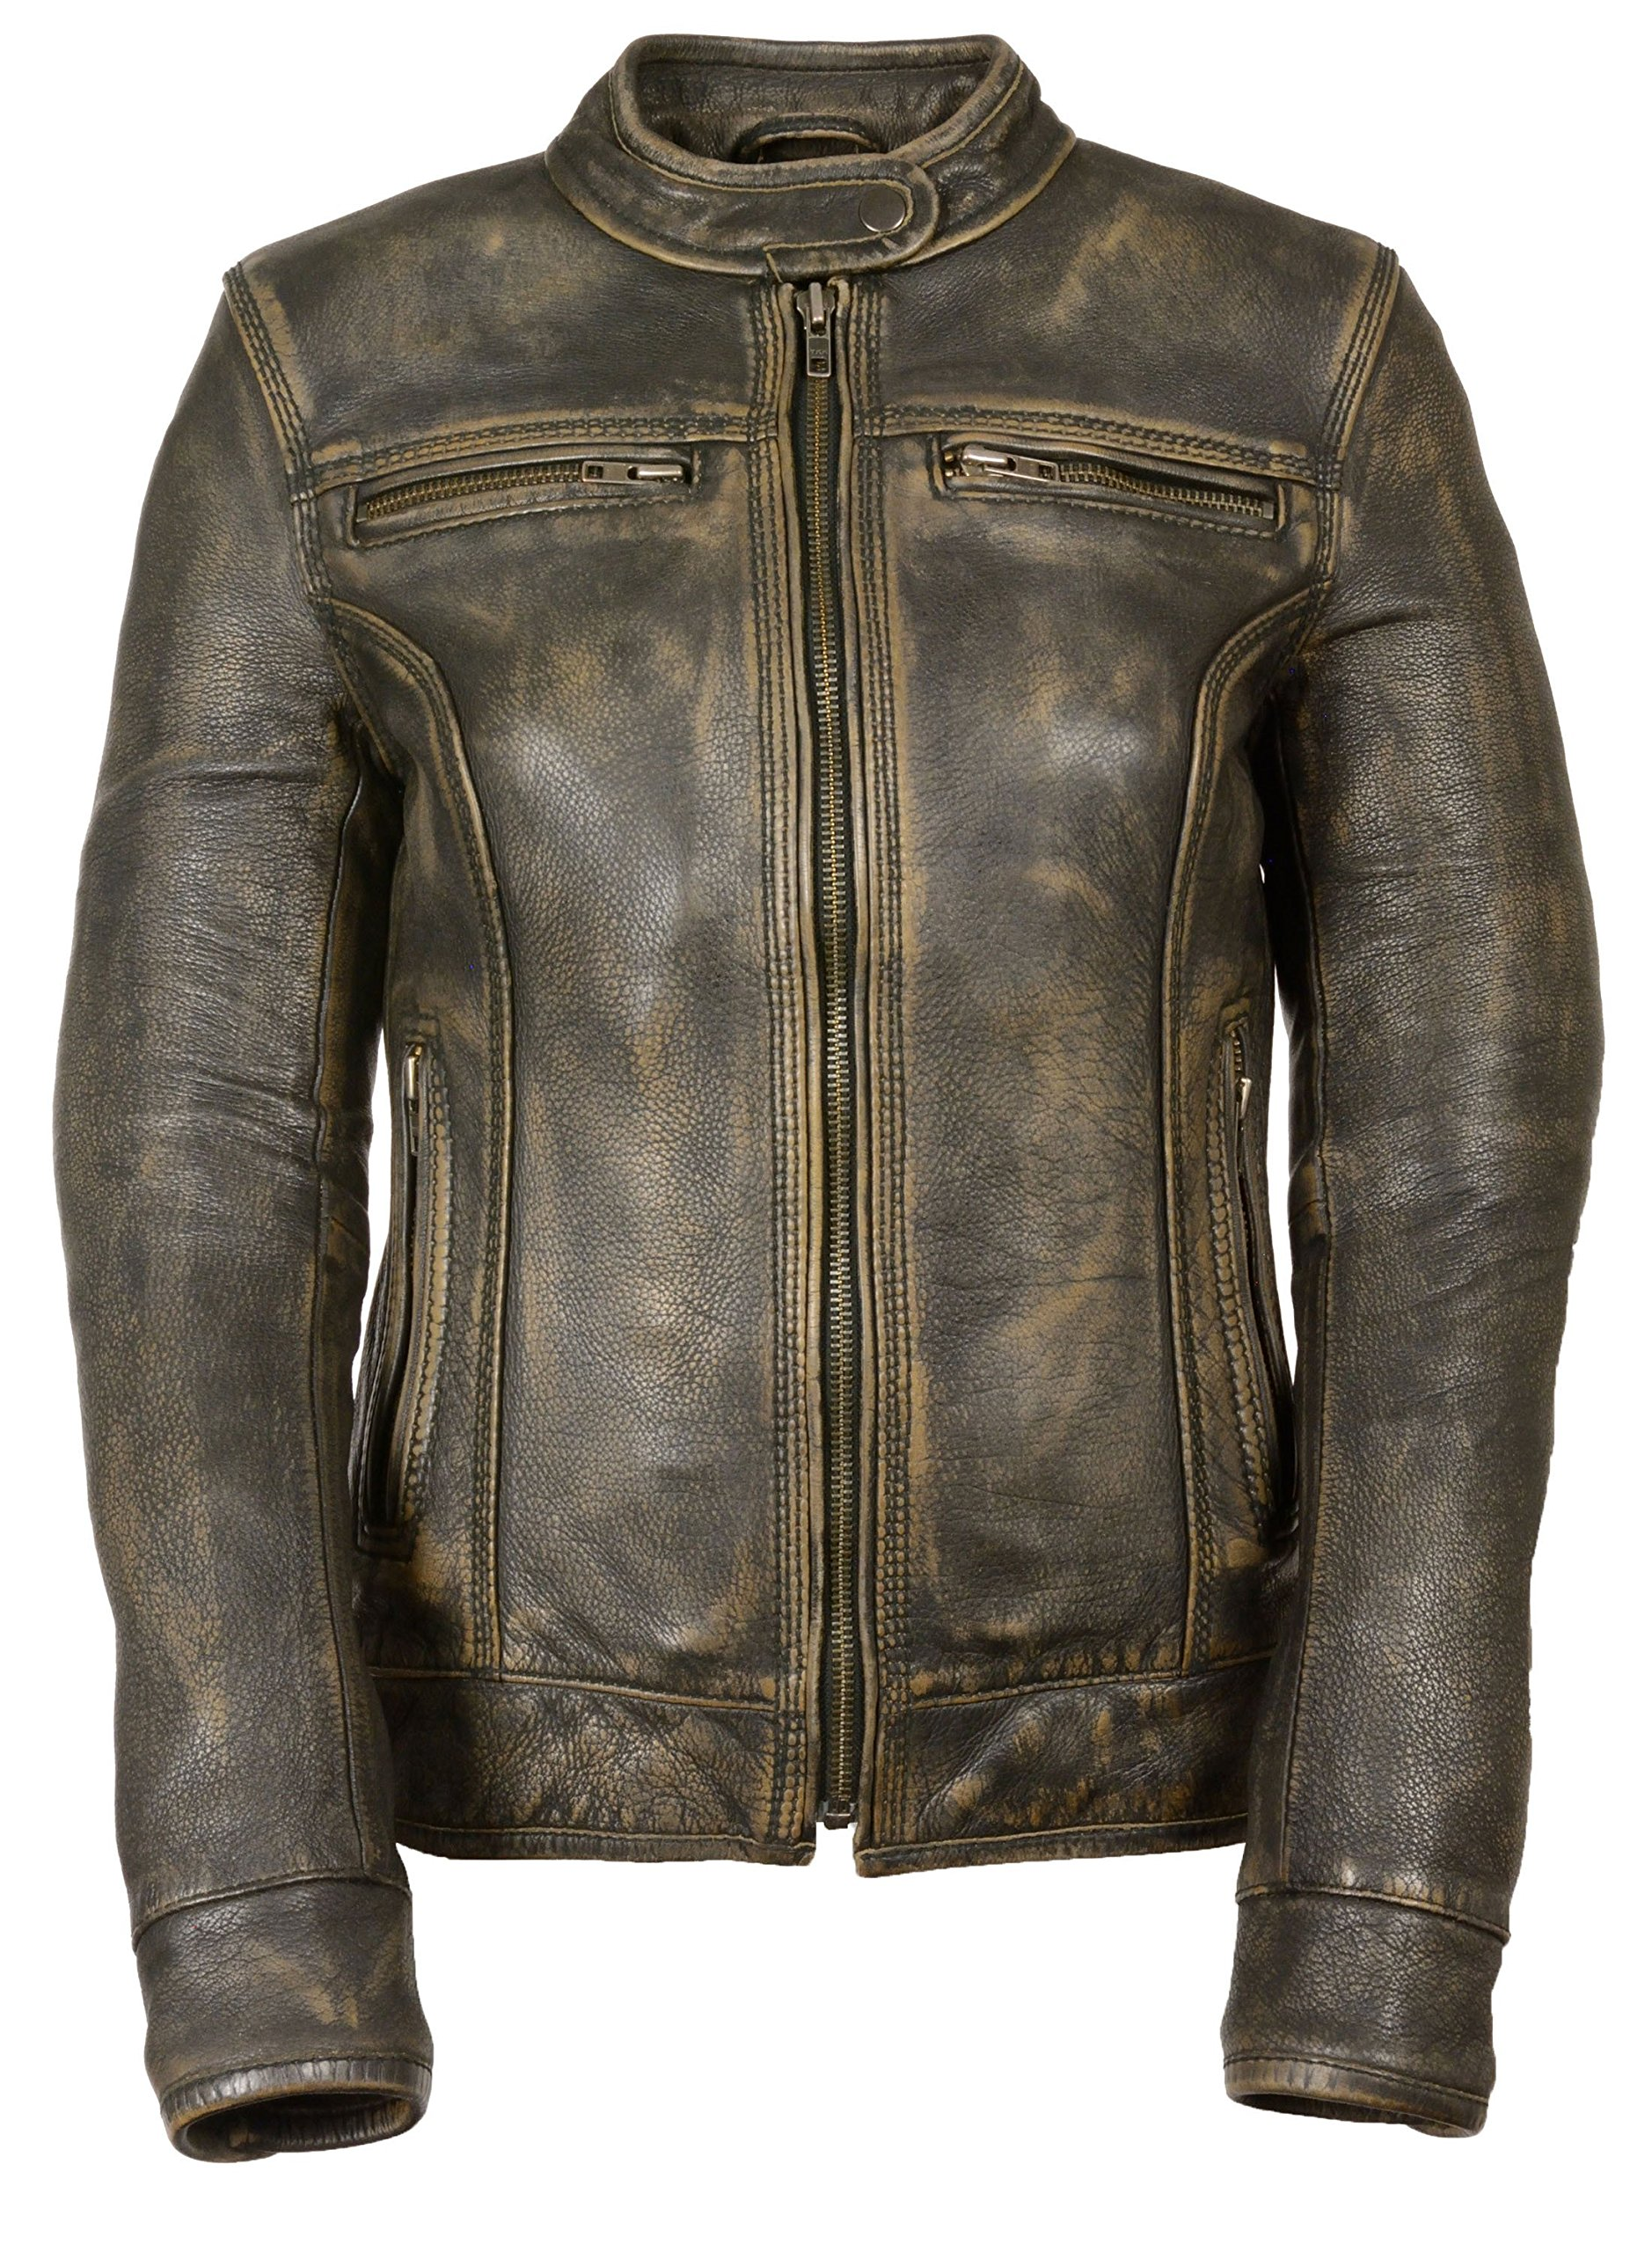 Womens Distressed Leather Vented Scooter Jacket, Brown Size M